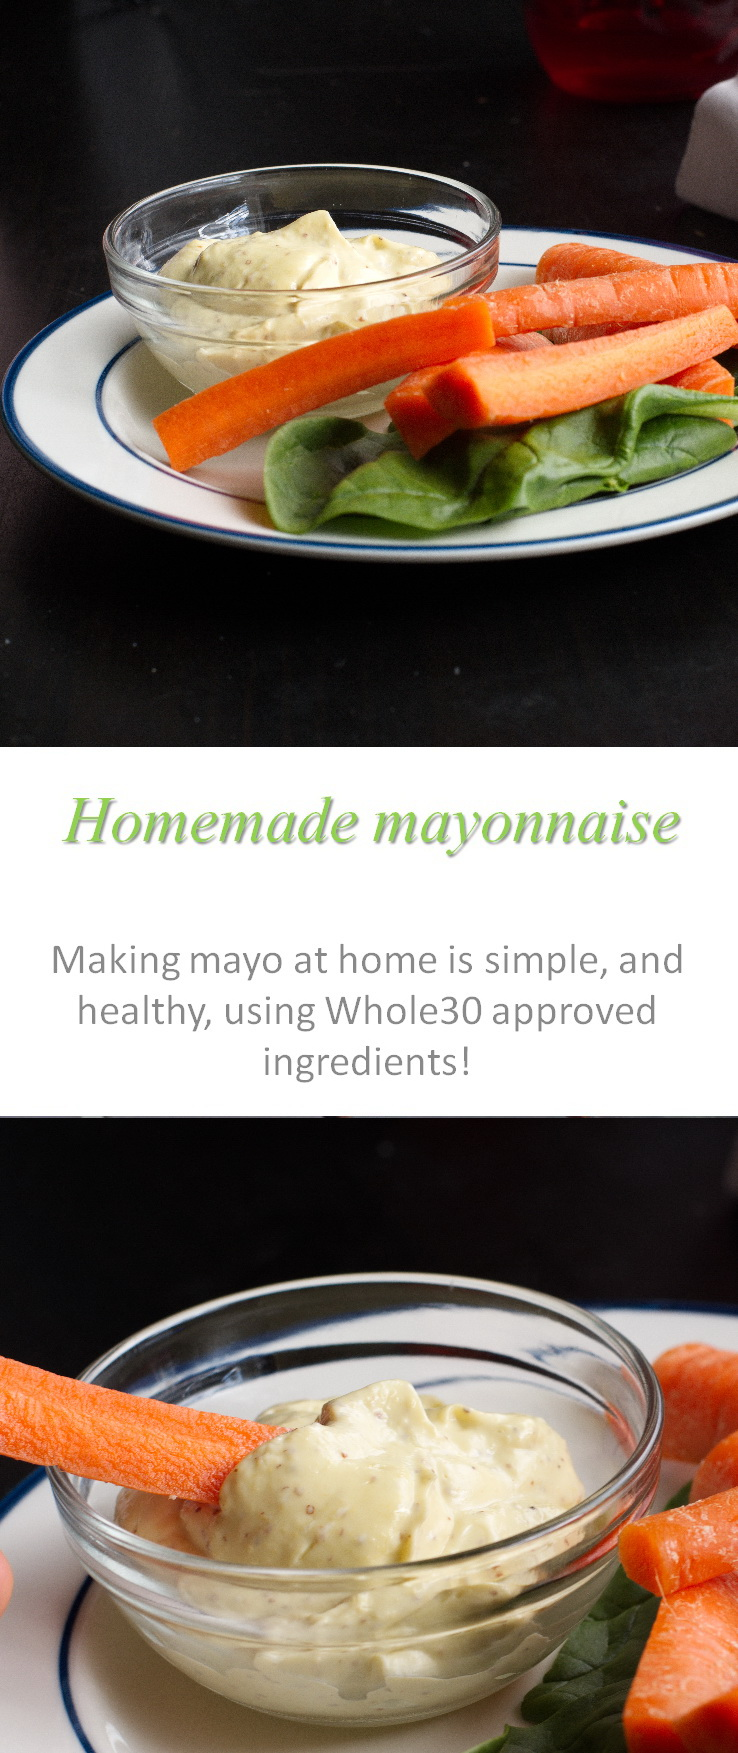 Make your own mayonnaise at home, with good, Whole30 compliant ingredients - it's so simple! #mayonnaise #cookathome #glutenfree #dairyfree